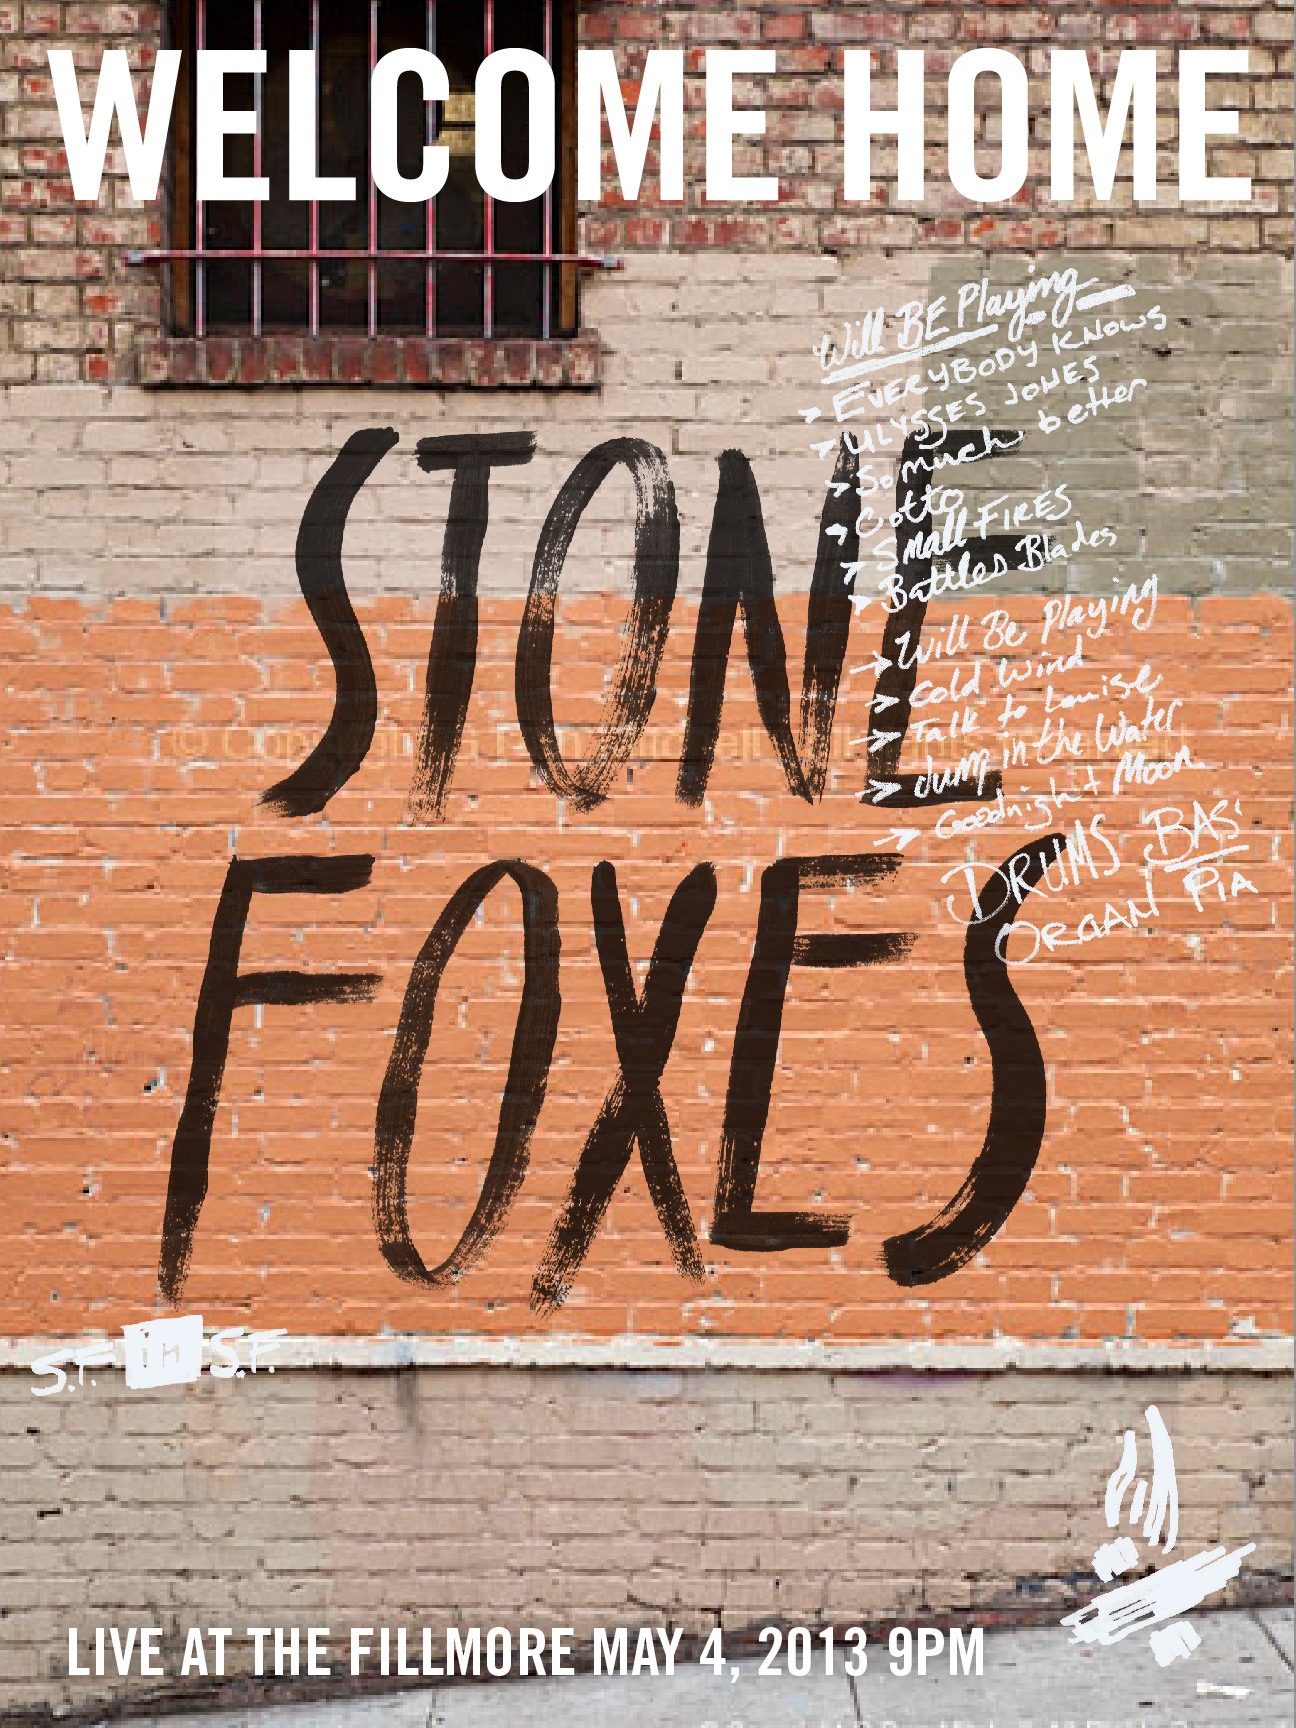 The Stone Foxes - A Homecoming Poster - image 14 - student project